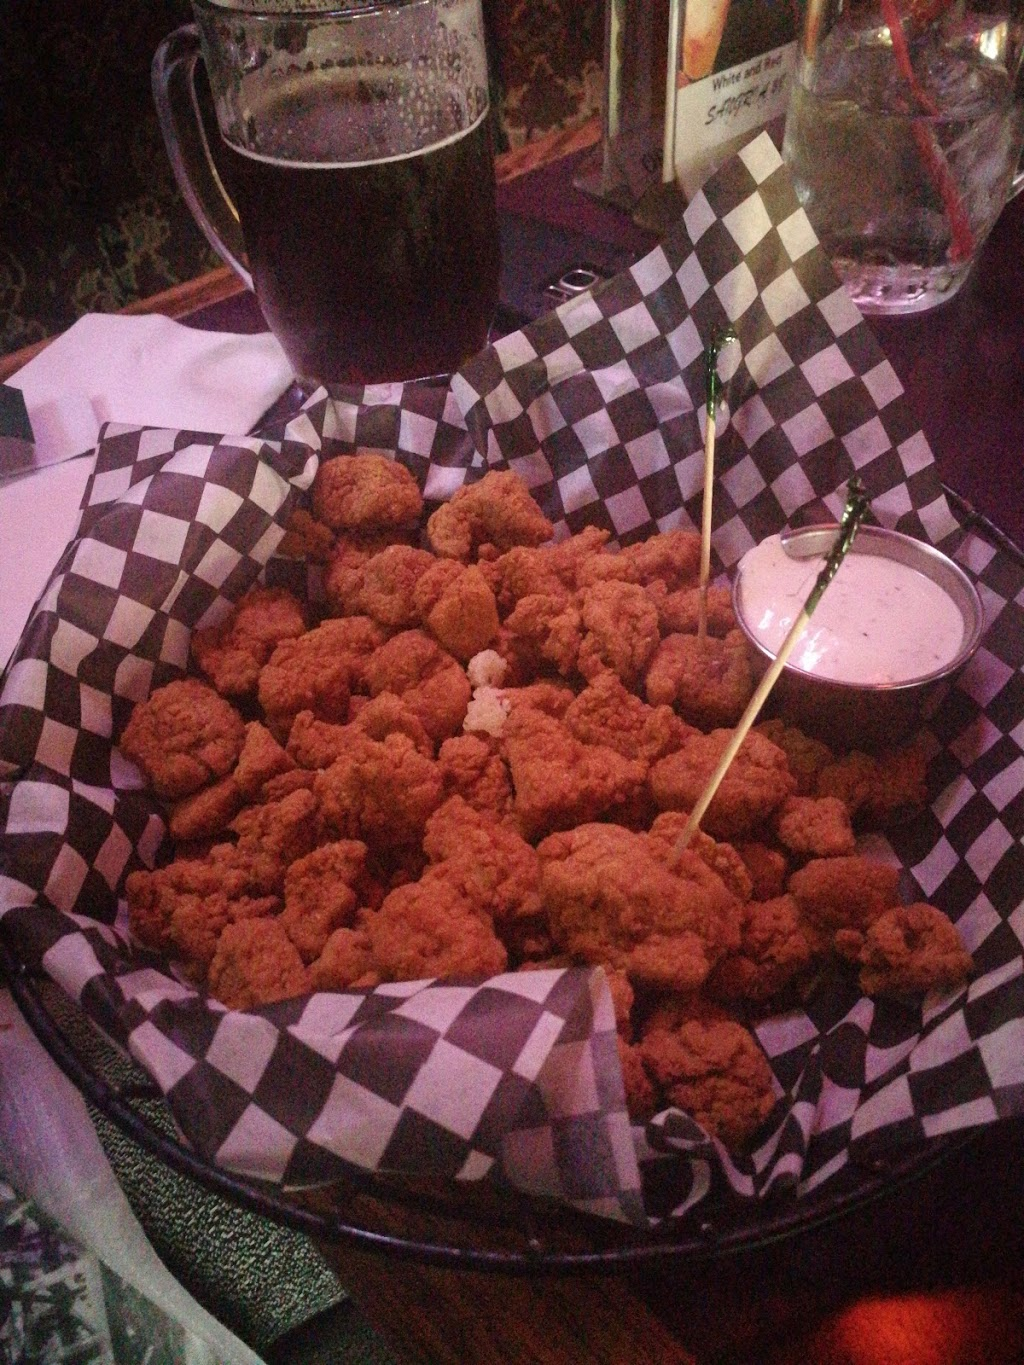 Fox & Hounds Pub & Brewery   meal takeaway   20-7 Assiniboine Dr, Saskatoon, SK S7K 1H1, Canada   3066642233 OR +1 306-664-2233